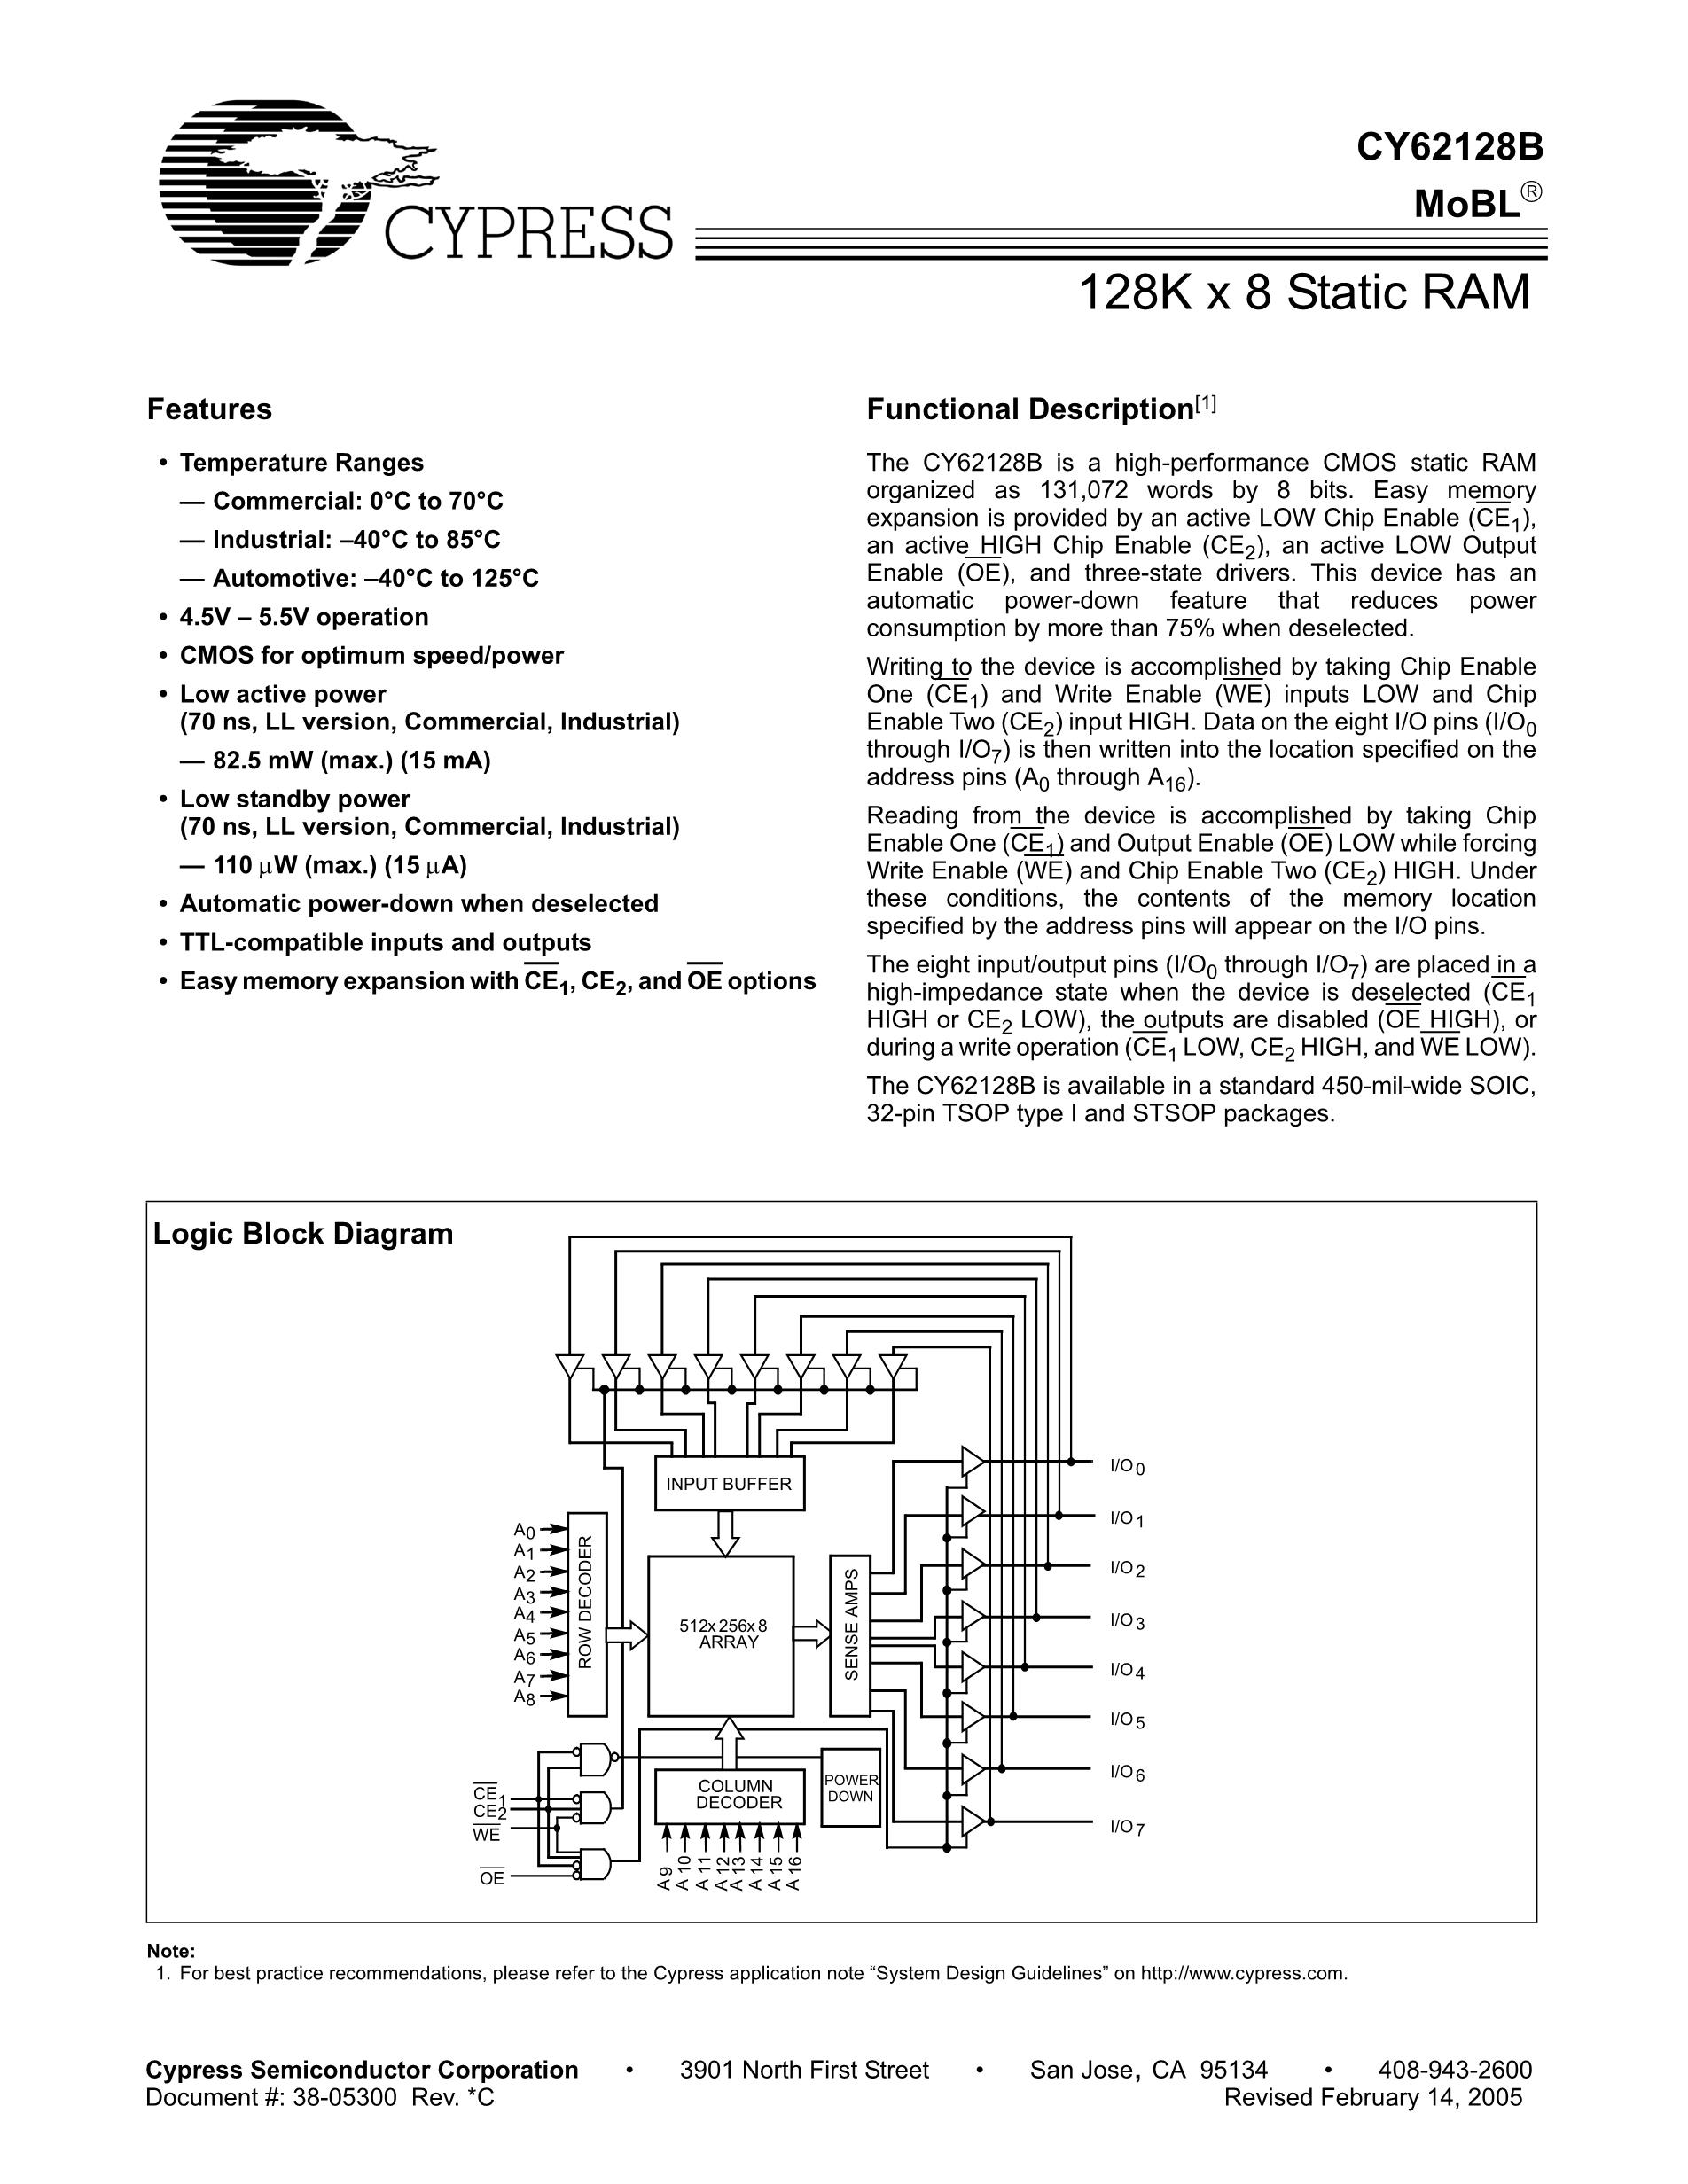 CY62157H30-45BVXI's pdf picture 1